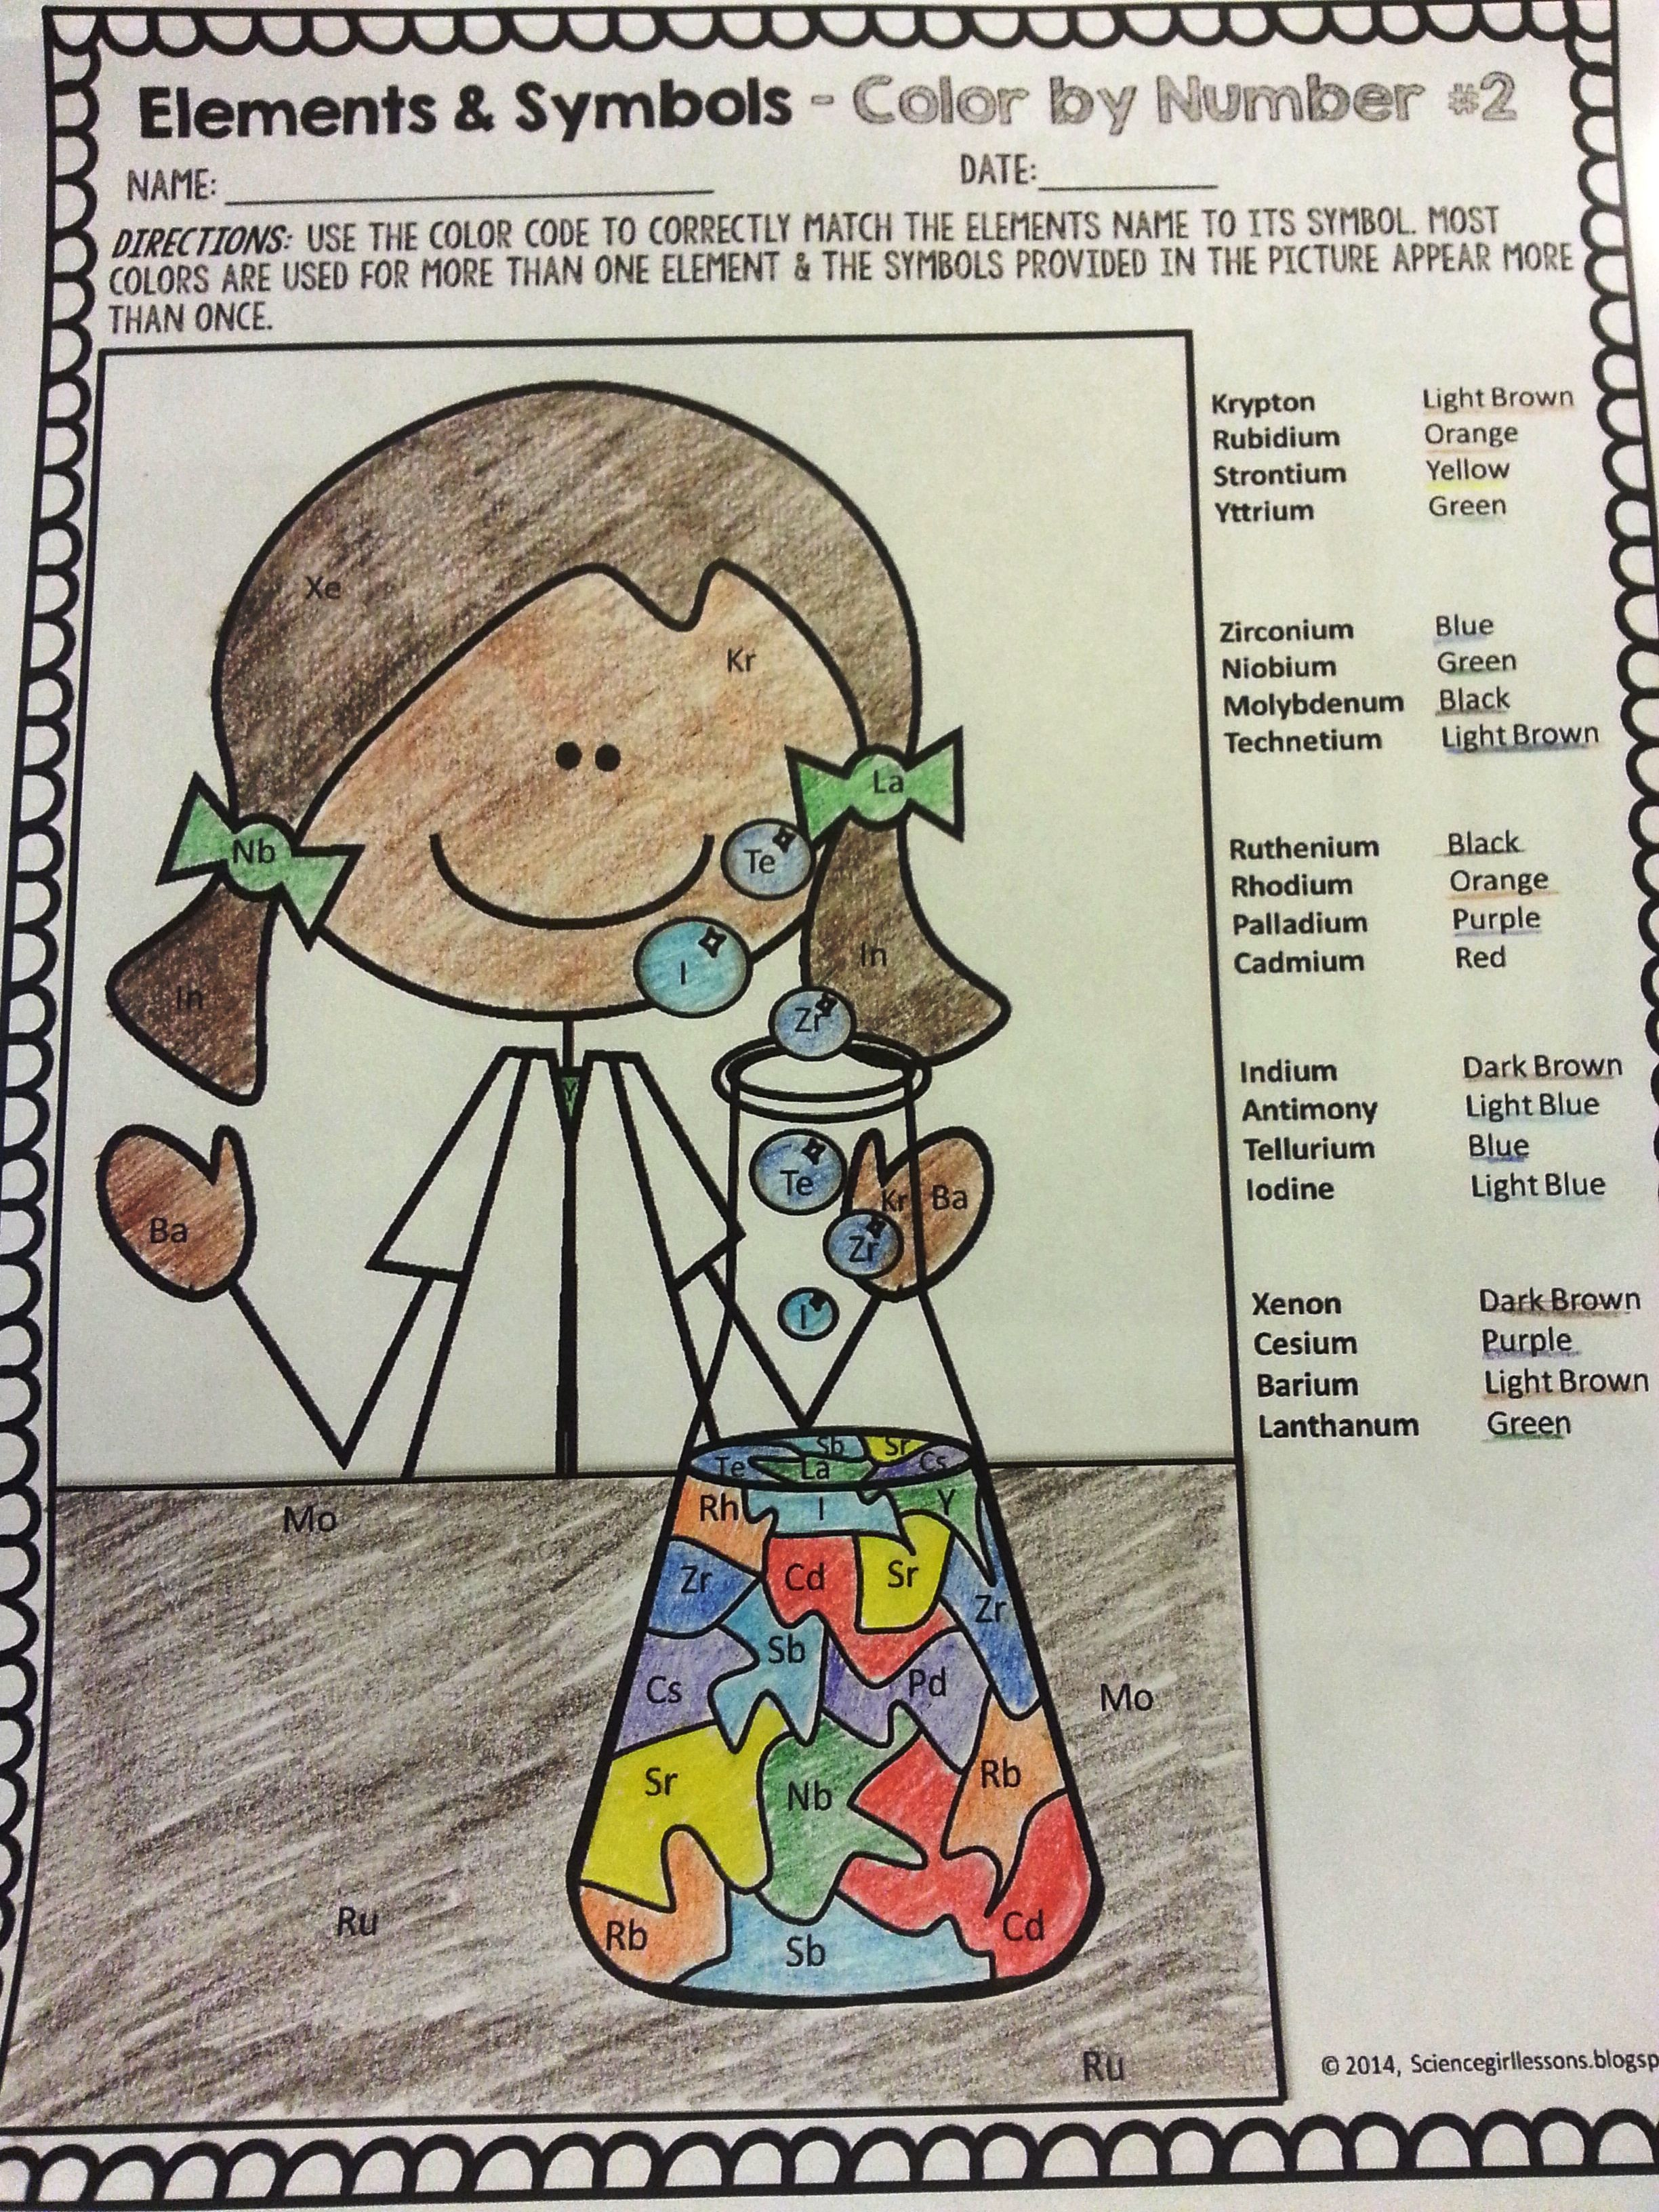 Chemical Elements Color By Symbols 2 Elementary Science Lab Activities Science Education